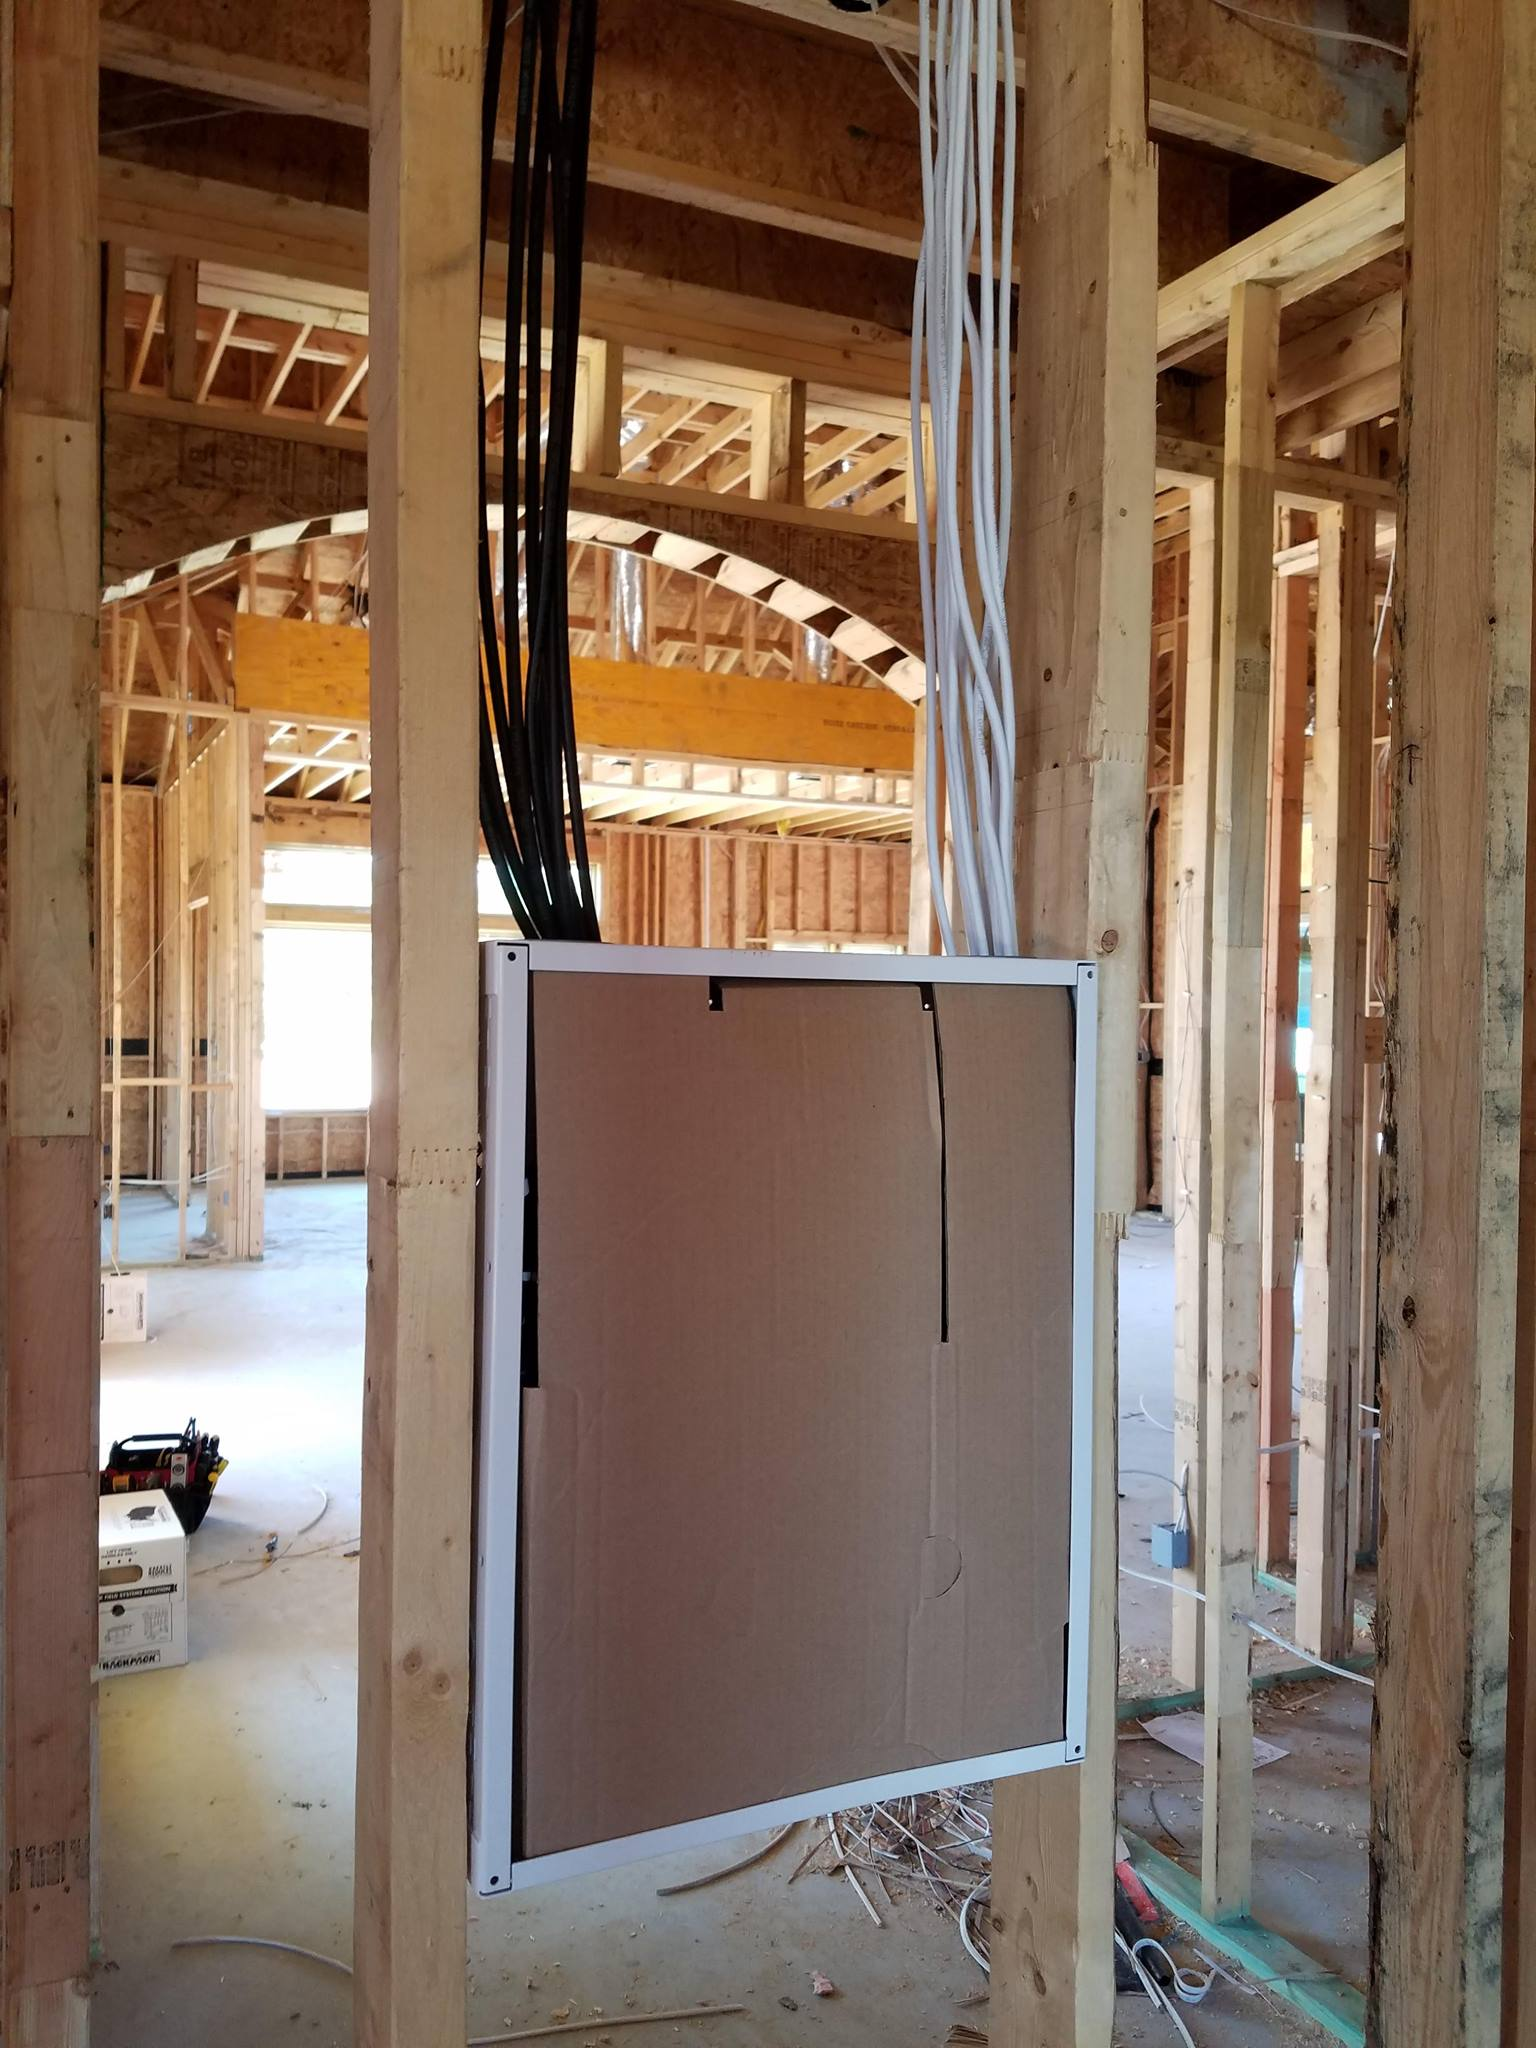 hight resolution of residential commercial prewiring